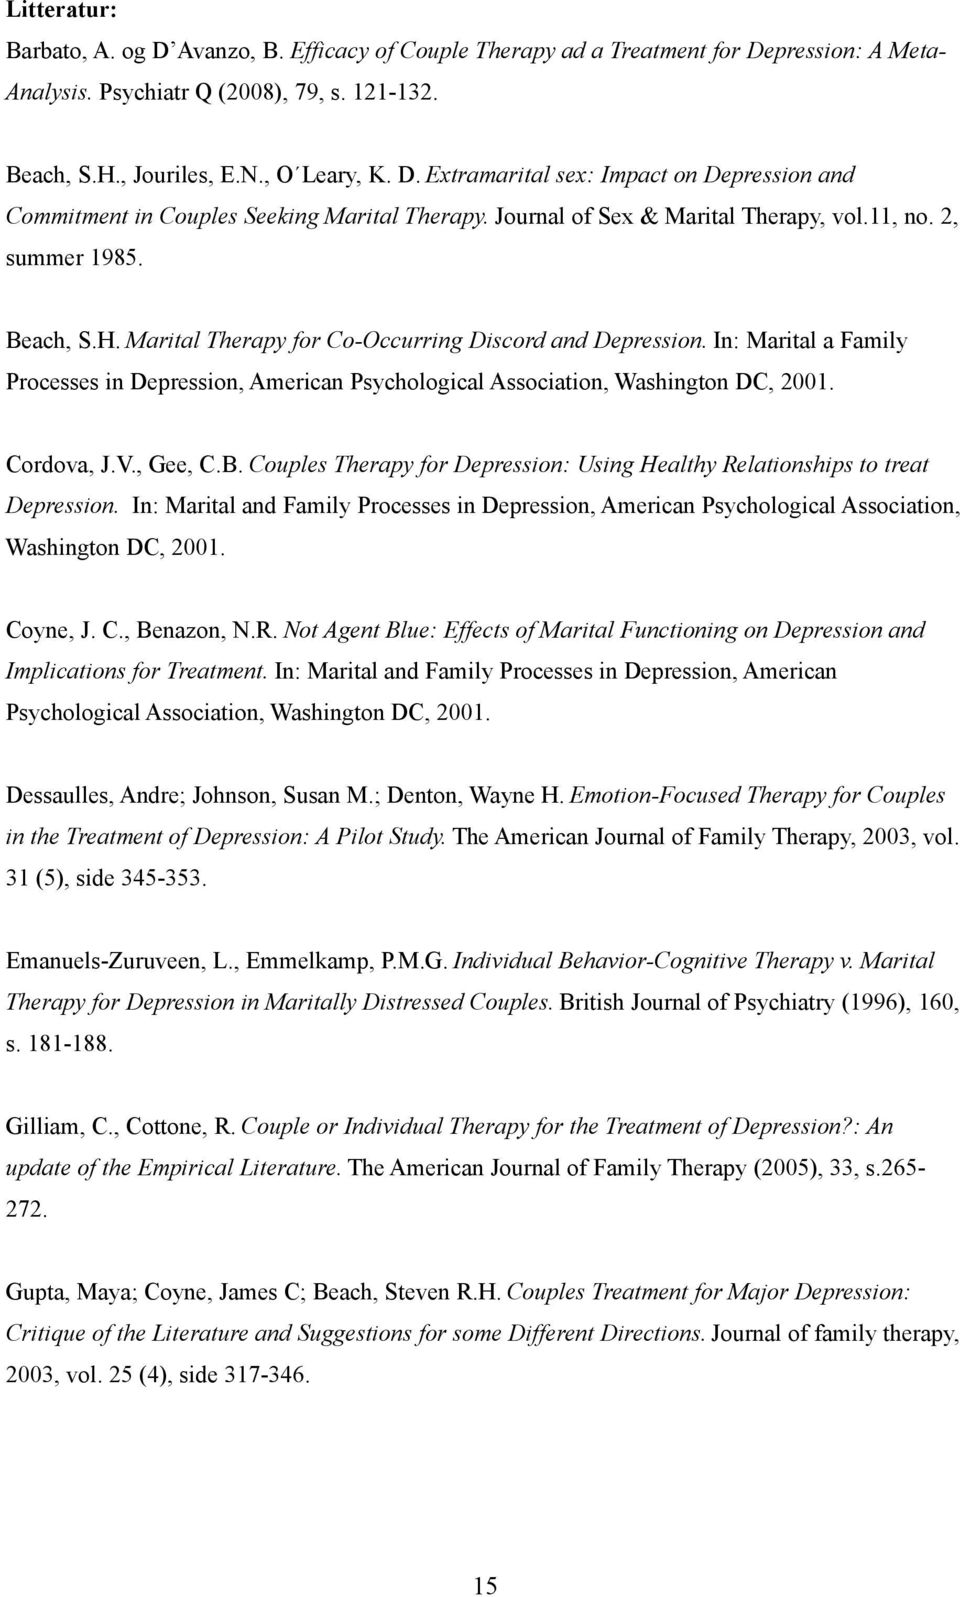 In: Marital a Family Processes in Depression, American Psychological Association, Washington DC, 2001. Cordova, J.V., Gee, C.B.